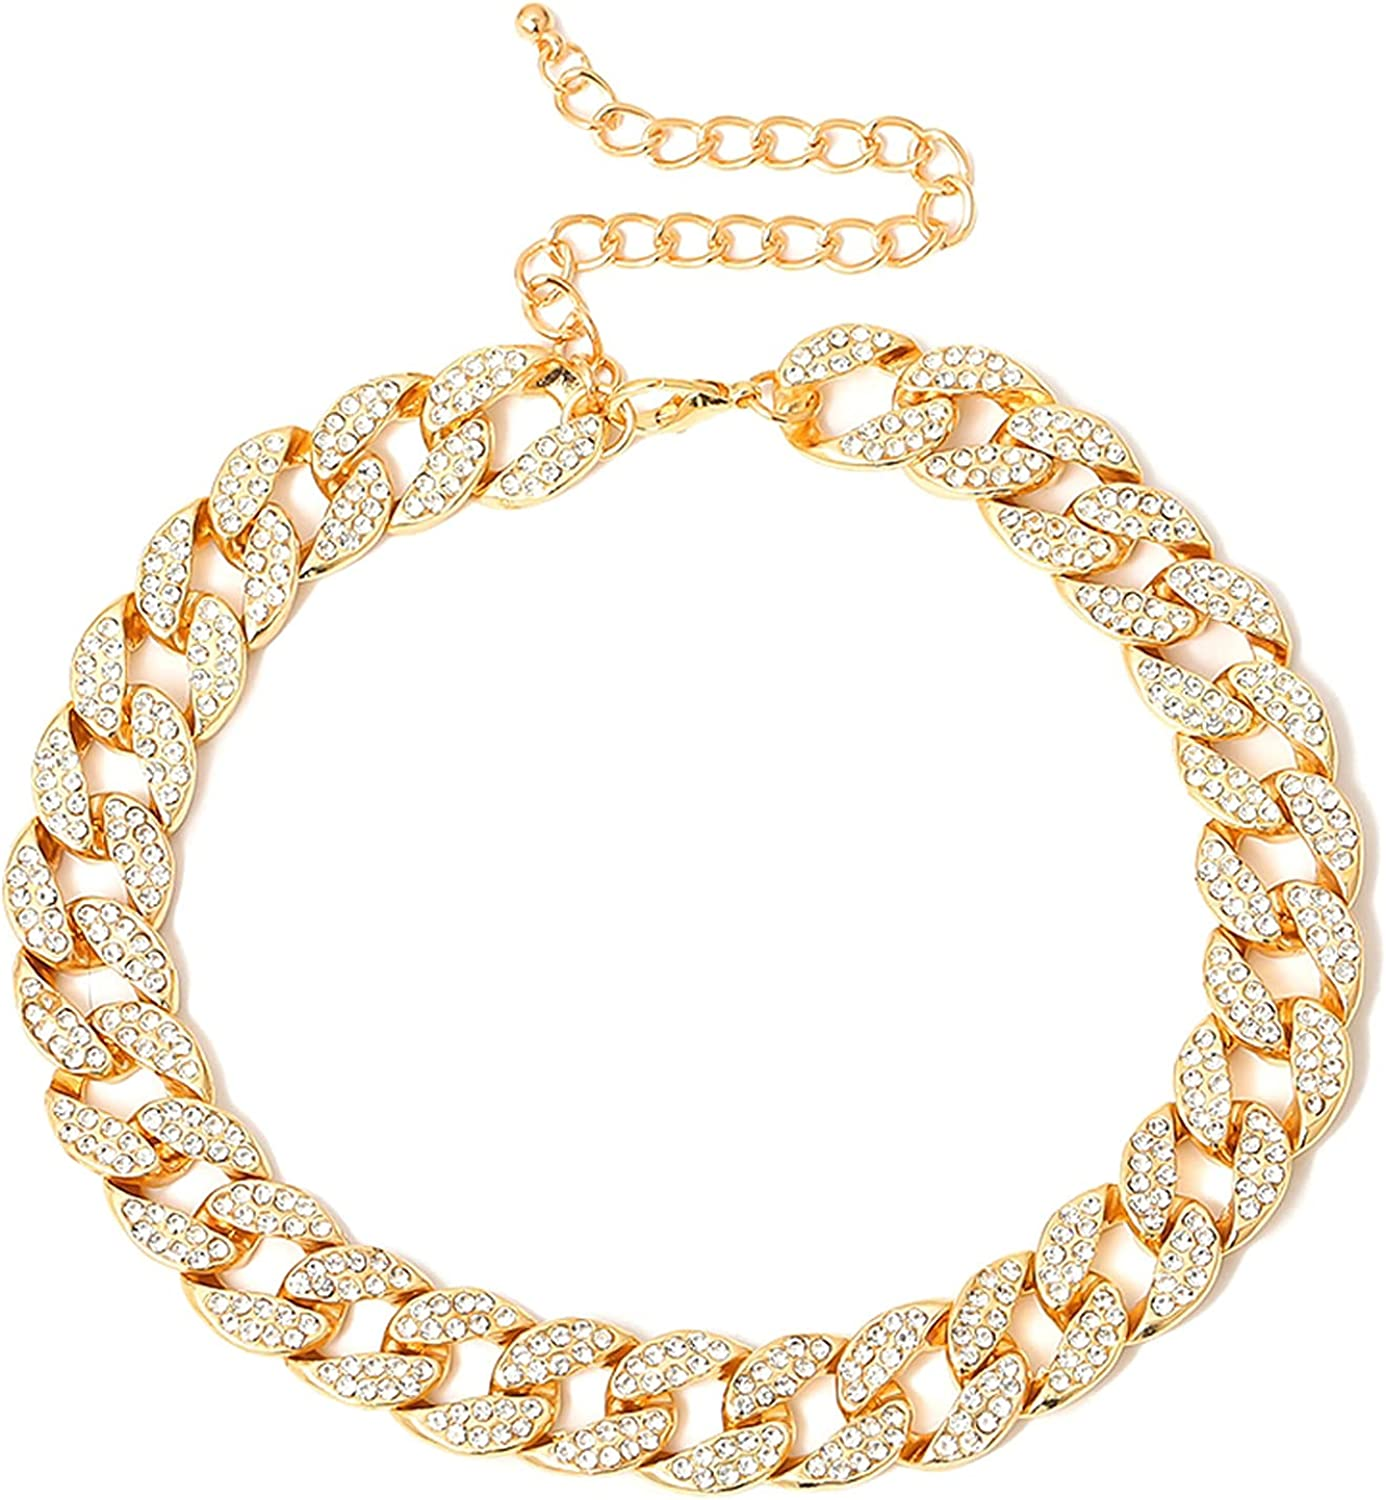 COLORFUL BLING Shiny Cubic Zircon Curb Cuban Link Chain Choker Rhinestone Inlaid for Women Unisex Cool Hip Hop Nightclub Party Statment Jewelry